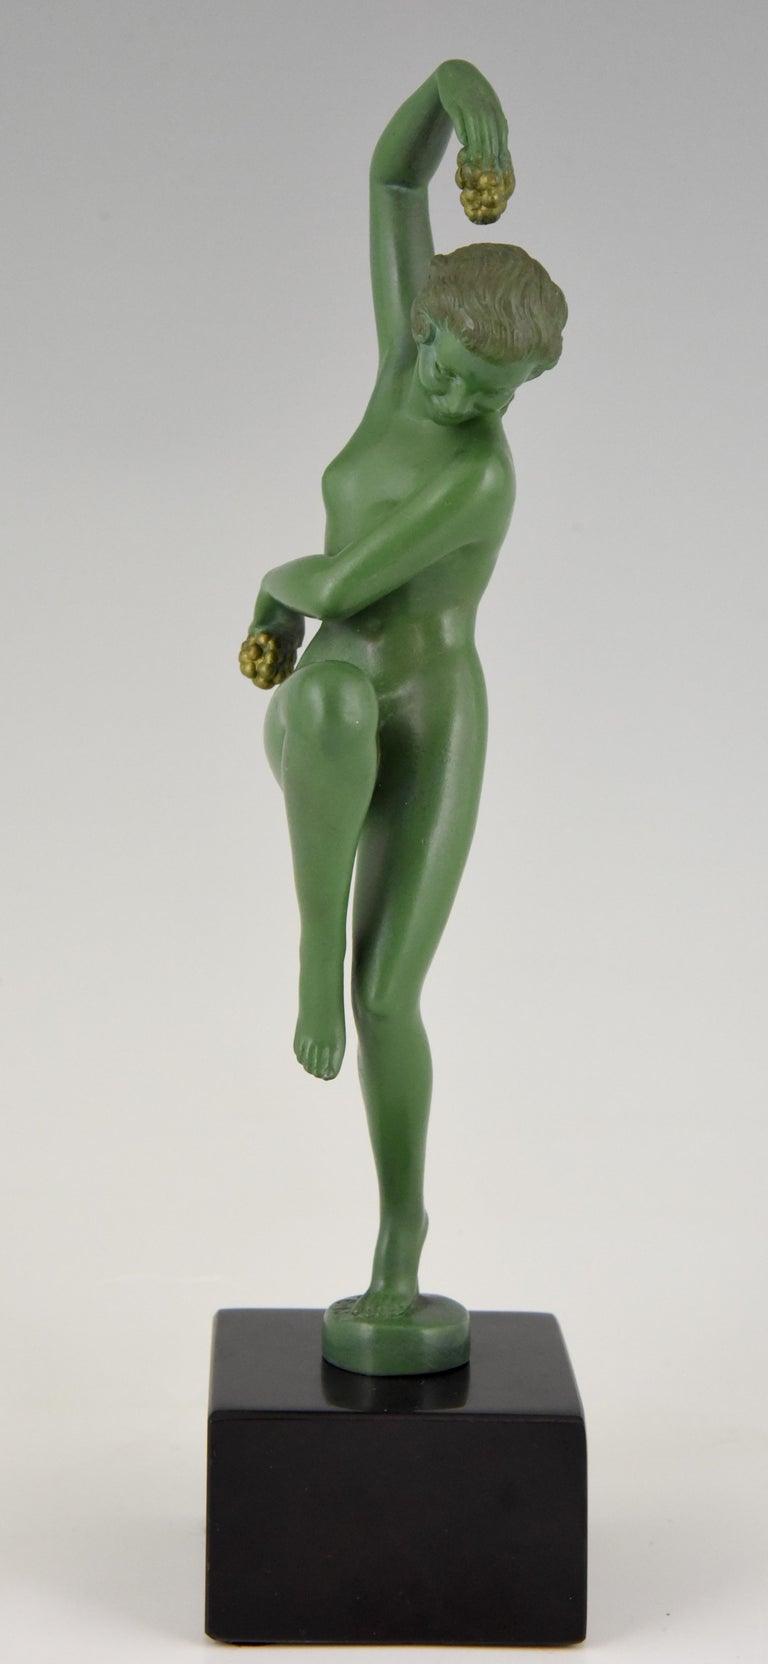 Art Deco Sculpture Nude Dancer with Grapes Denis France 1930 Green Art Metal In Good Condition For Sale In Antwerp, BE